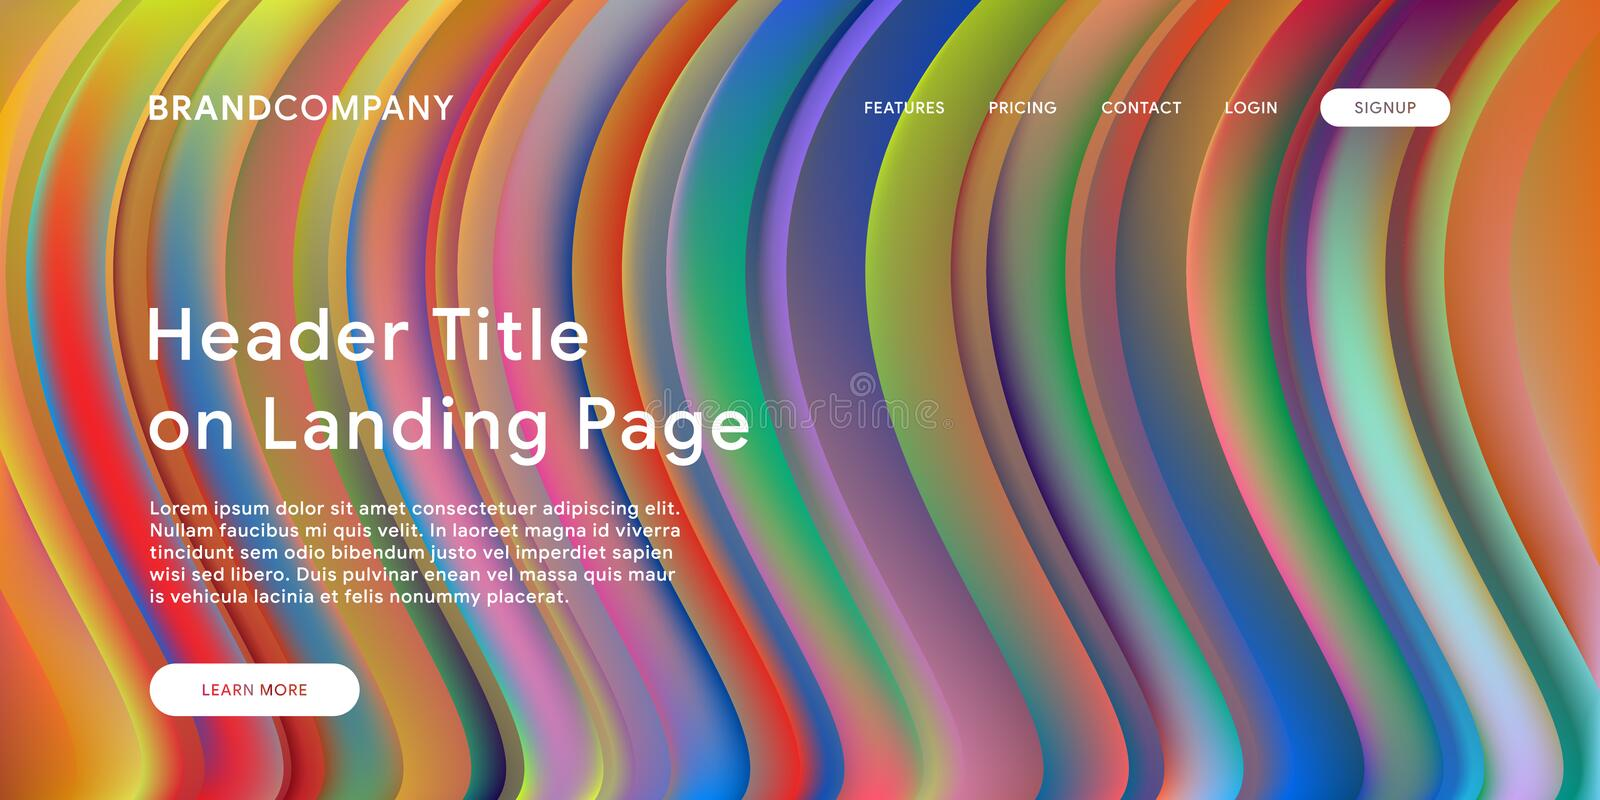 Creative design with fluid colorful shapes. Trendy color gradients. Strip design. Fluid shapes composition. Futuristic design. Landing page template royalty free stock image